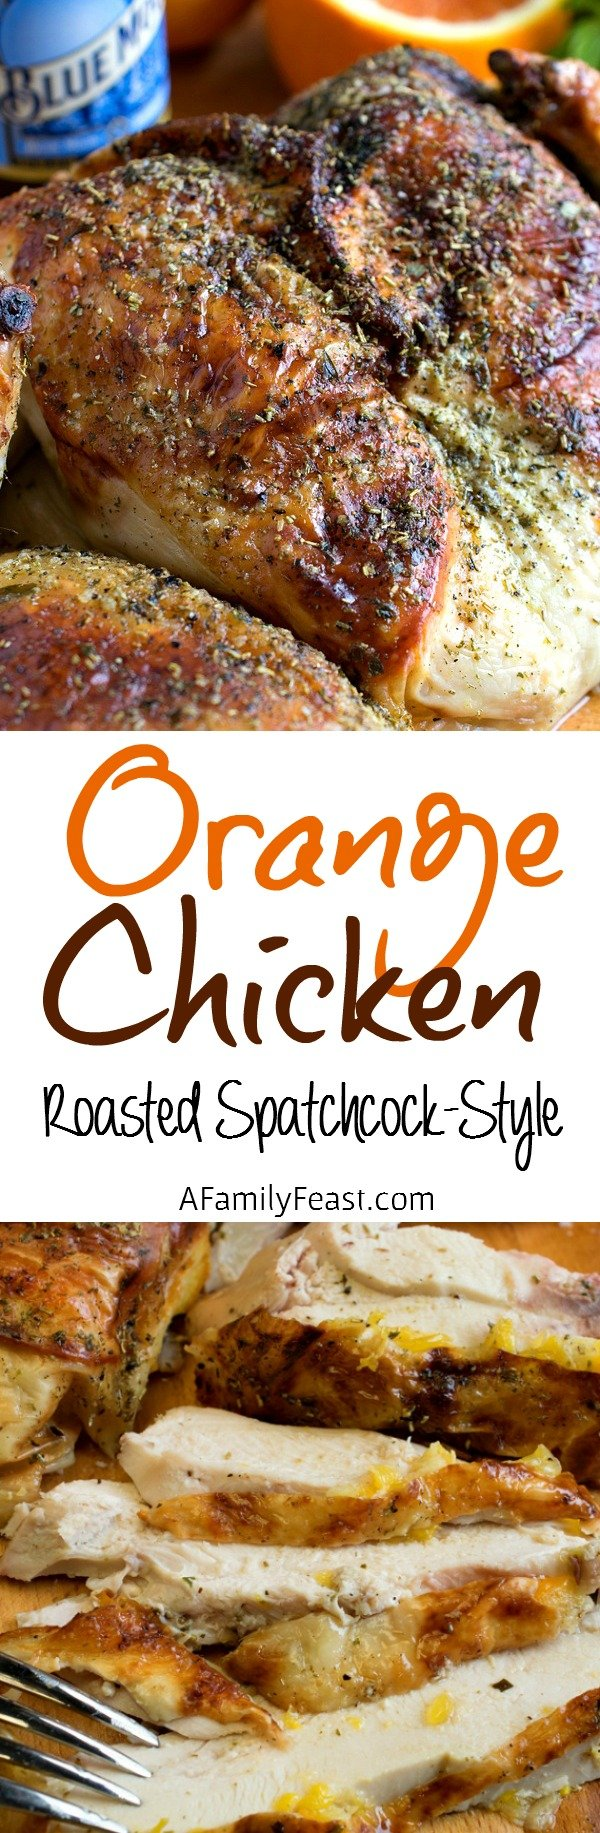 Orange Chicken Roasted Spatchcock-Style - A super flavorful roast chicken meal. Cooked spatchcock-style to ensure even roasting and juicy chicken!